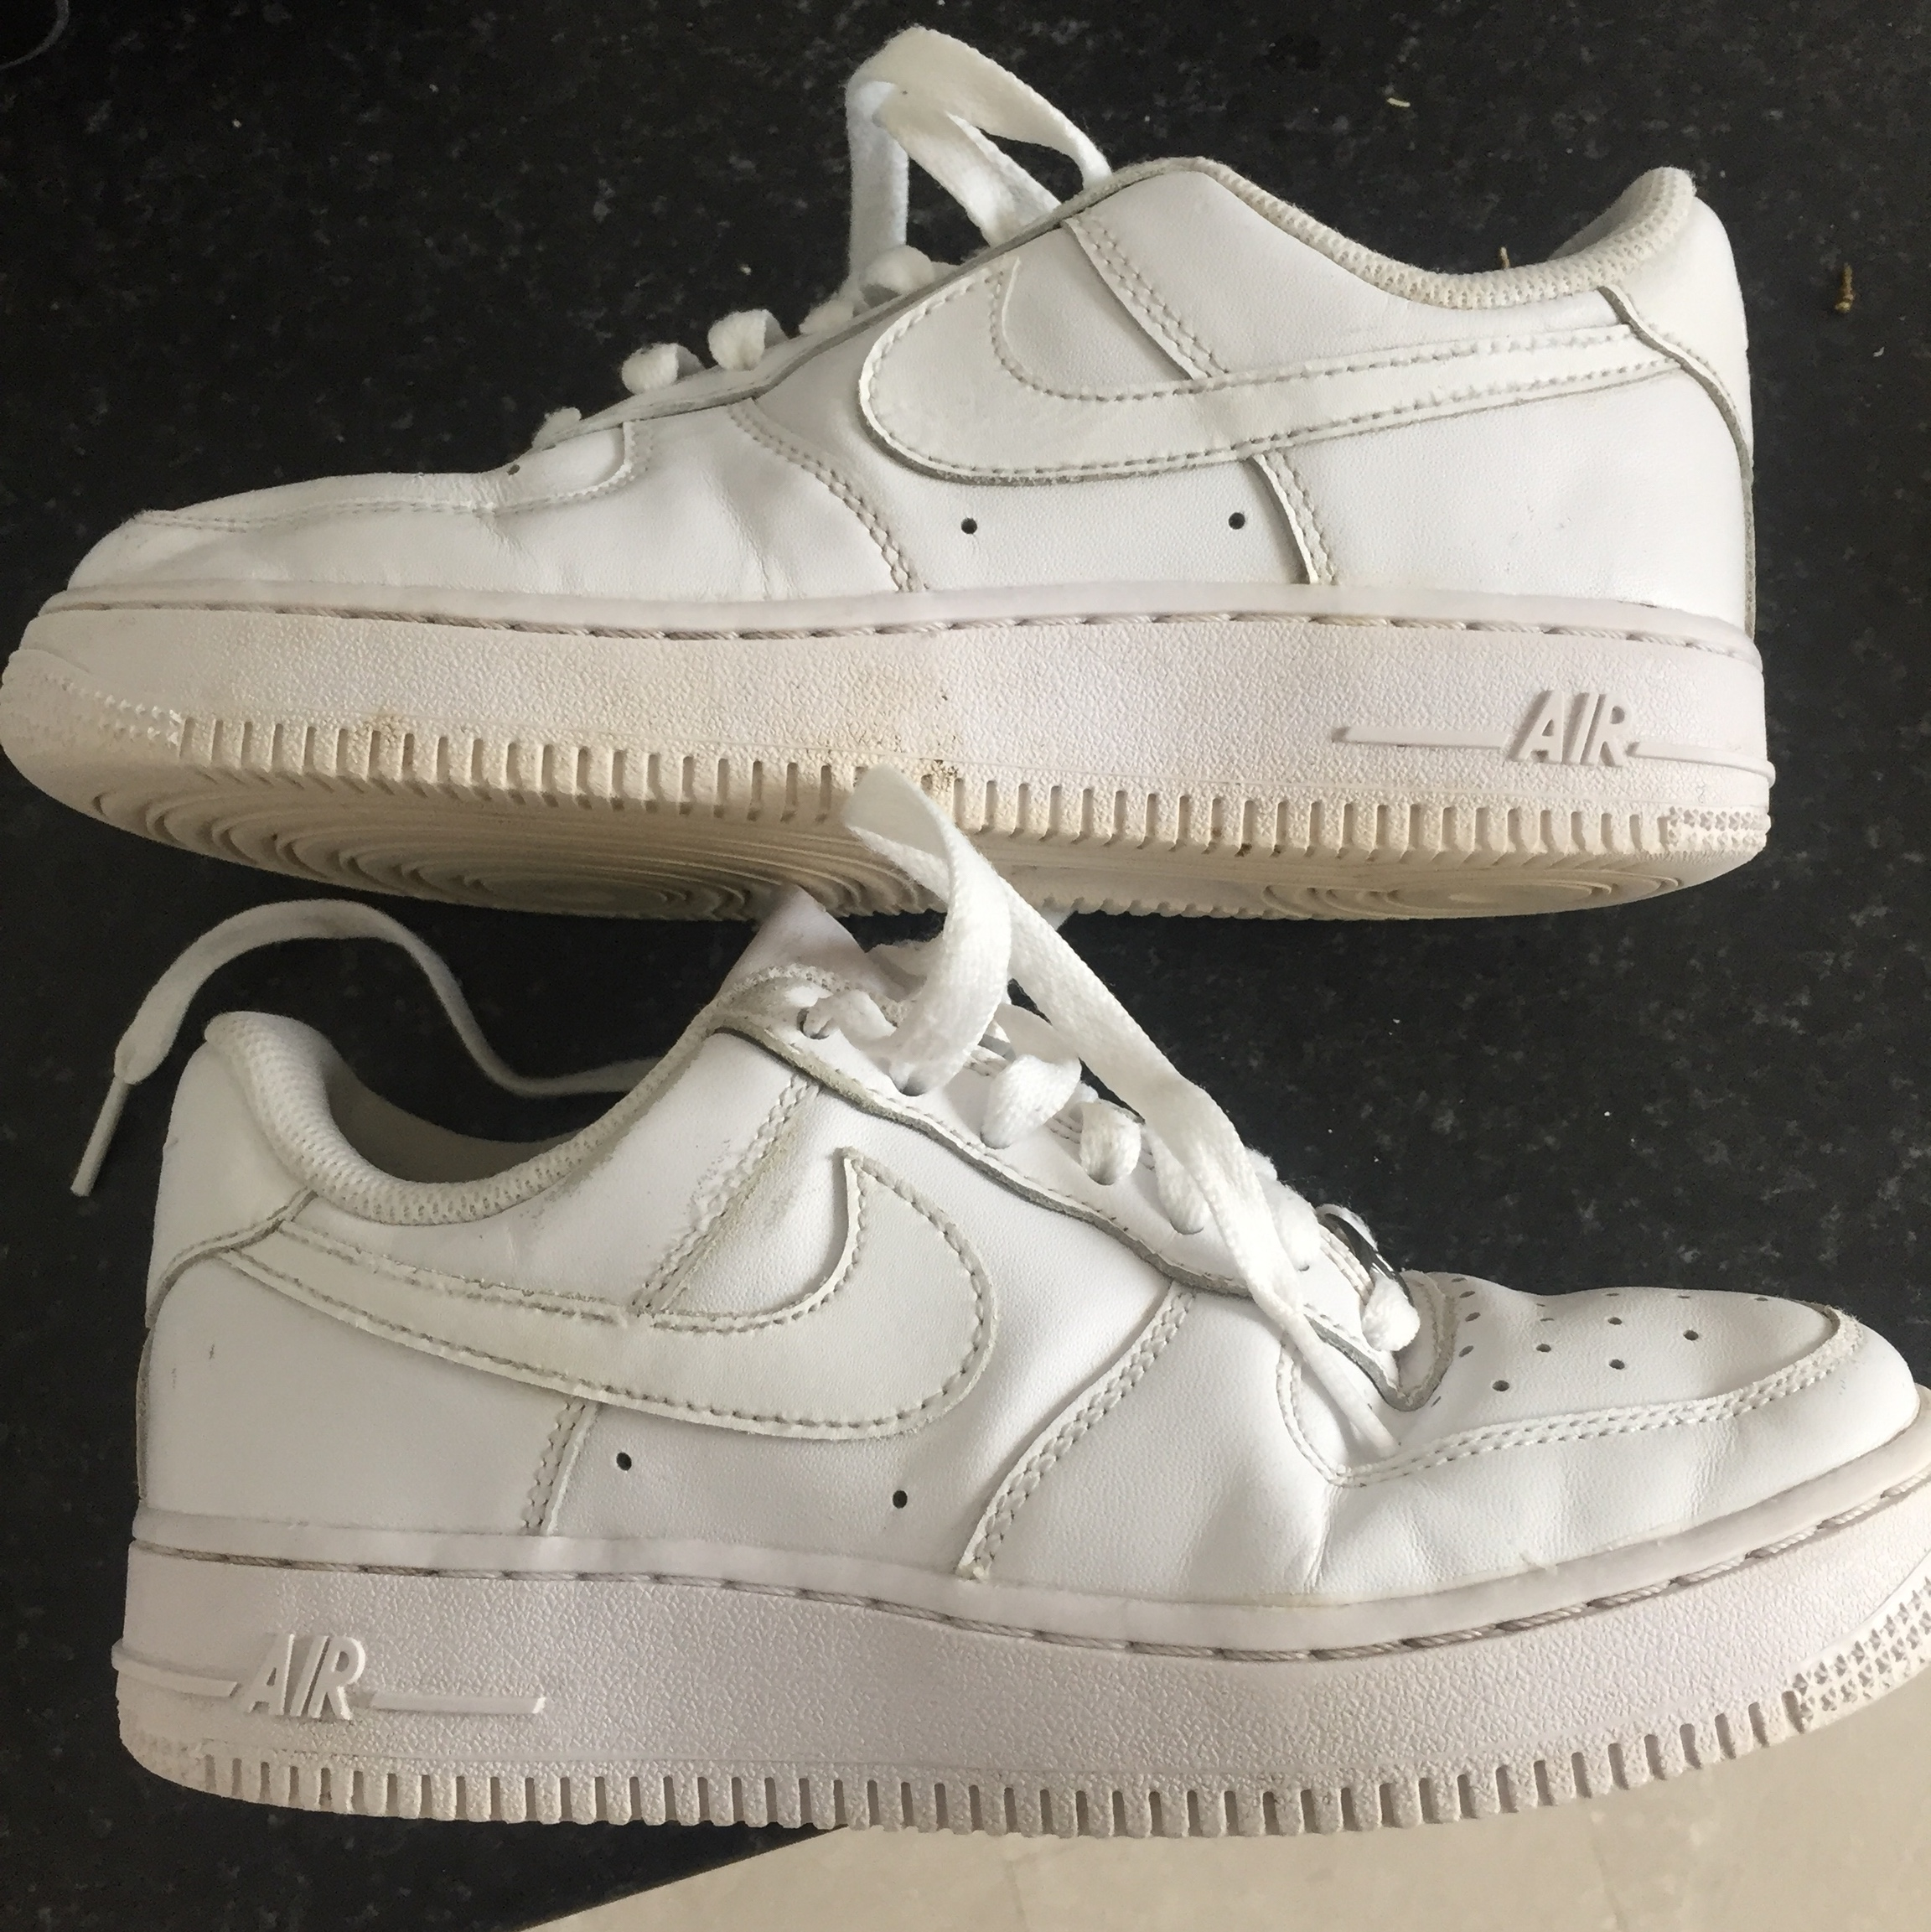 Nike Air Force 1 size uk 3 any questions please ask :) Depop